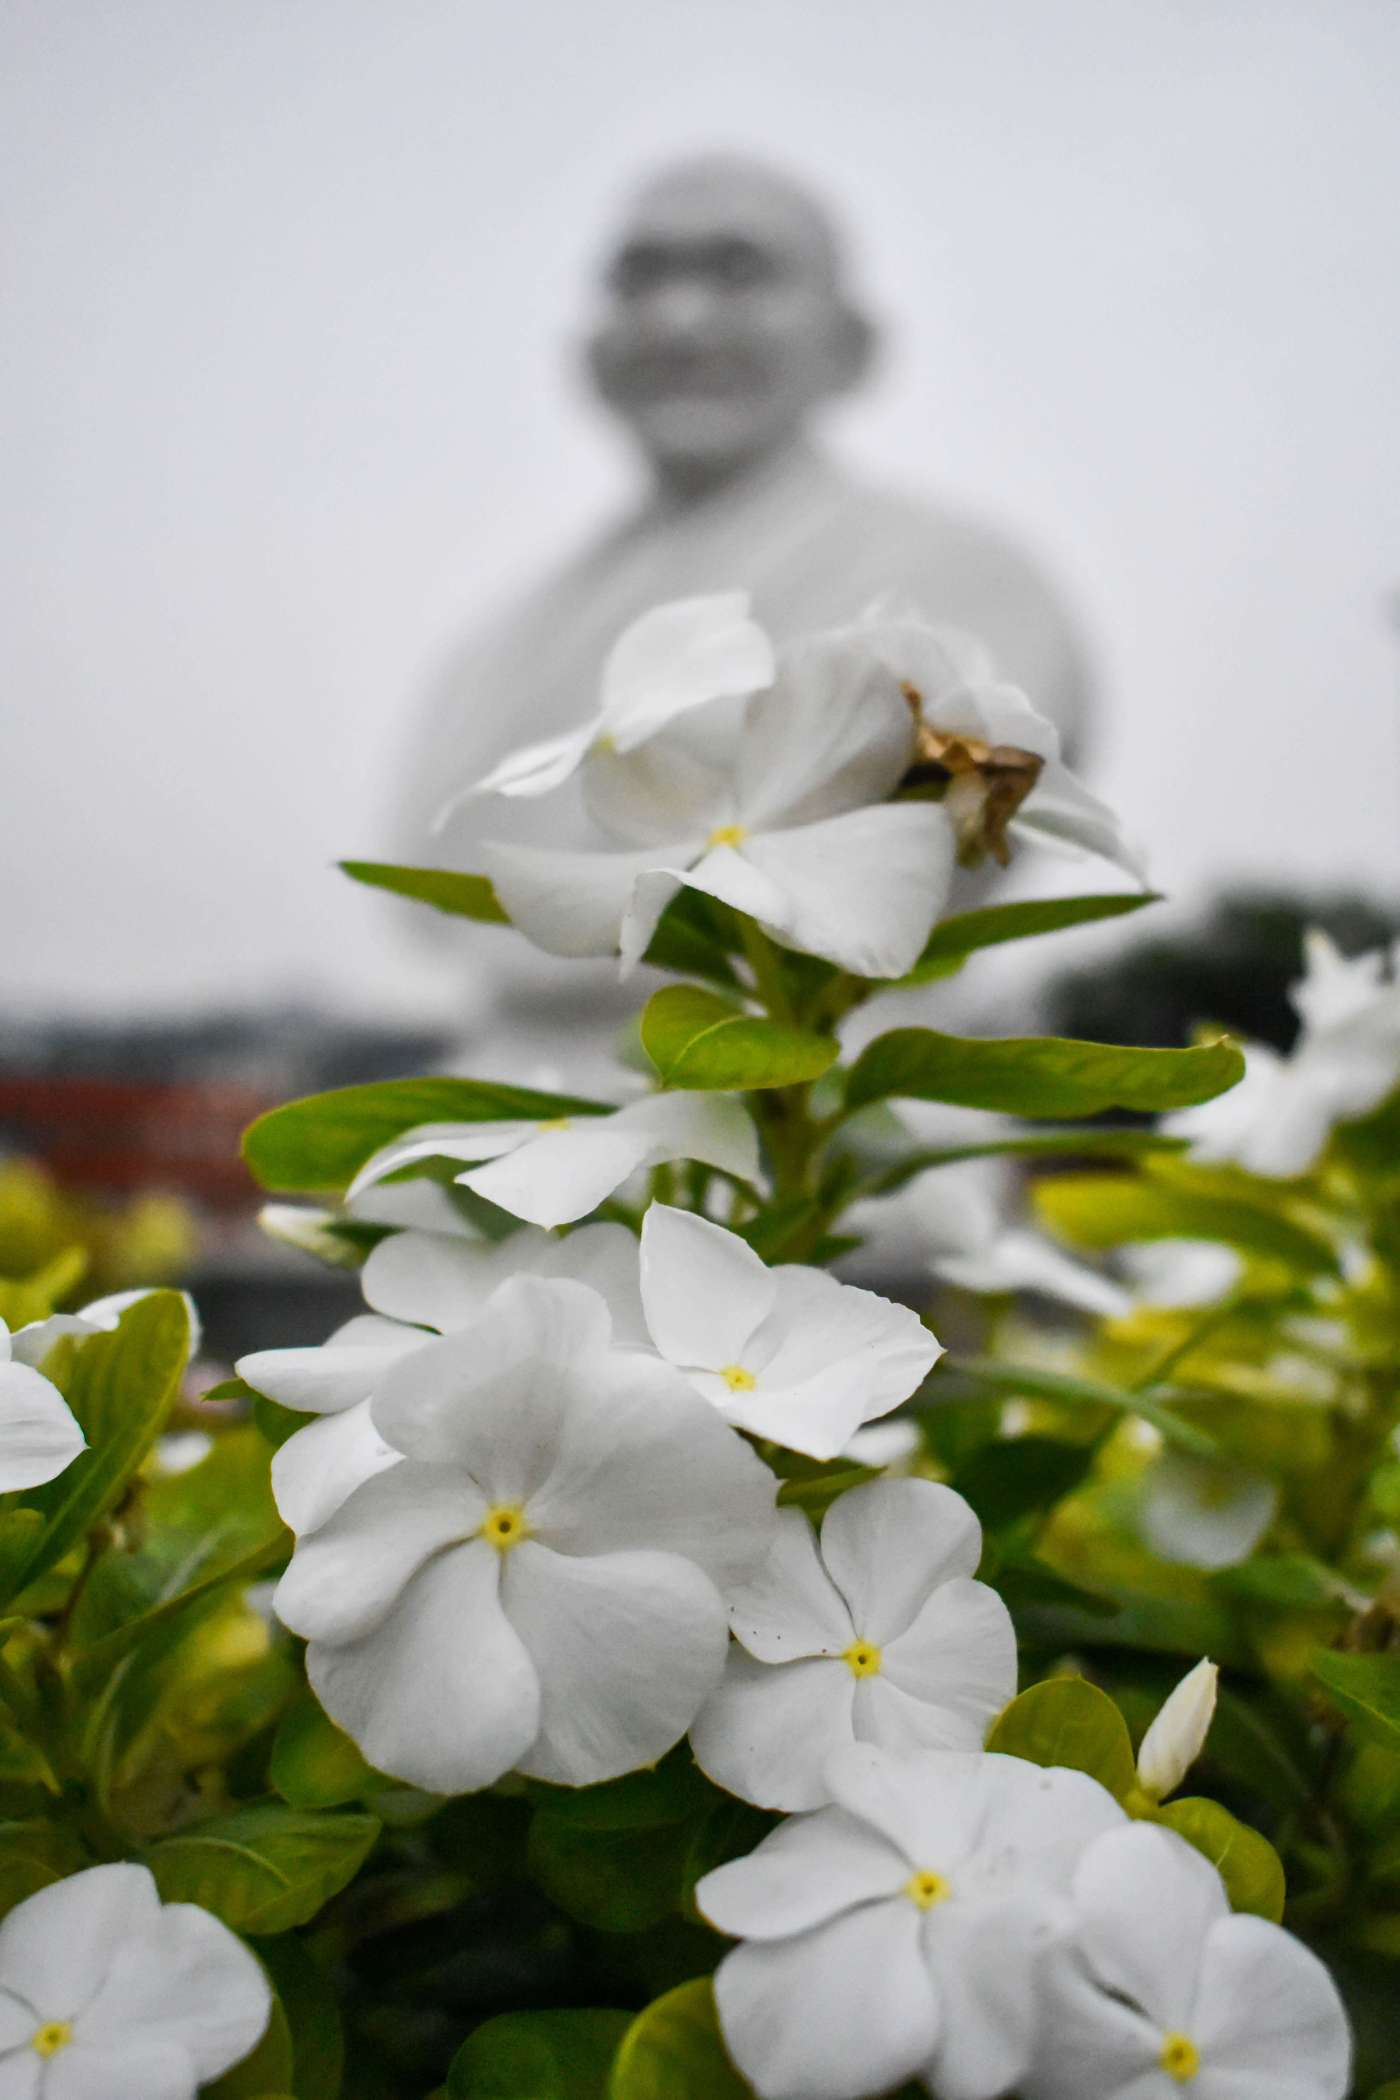 Gandhi Statue with flowers